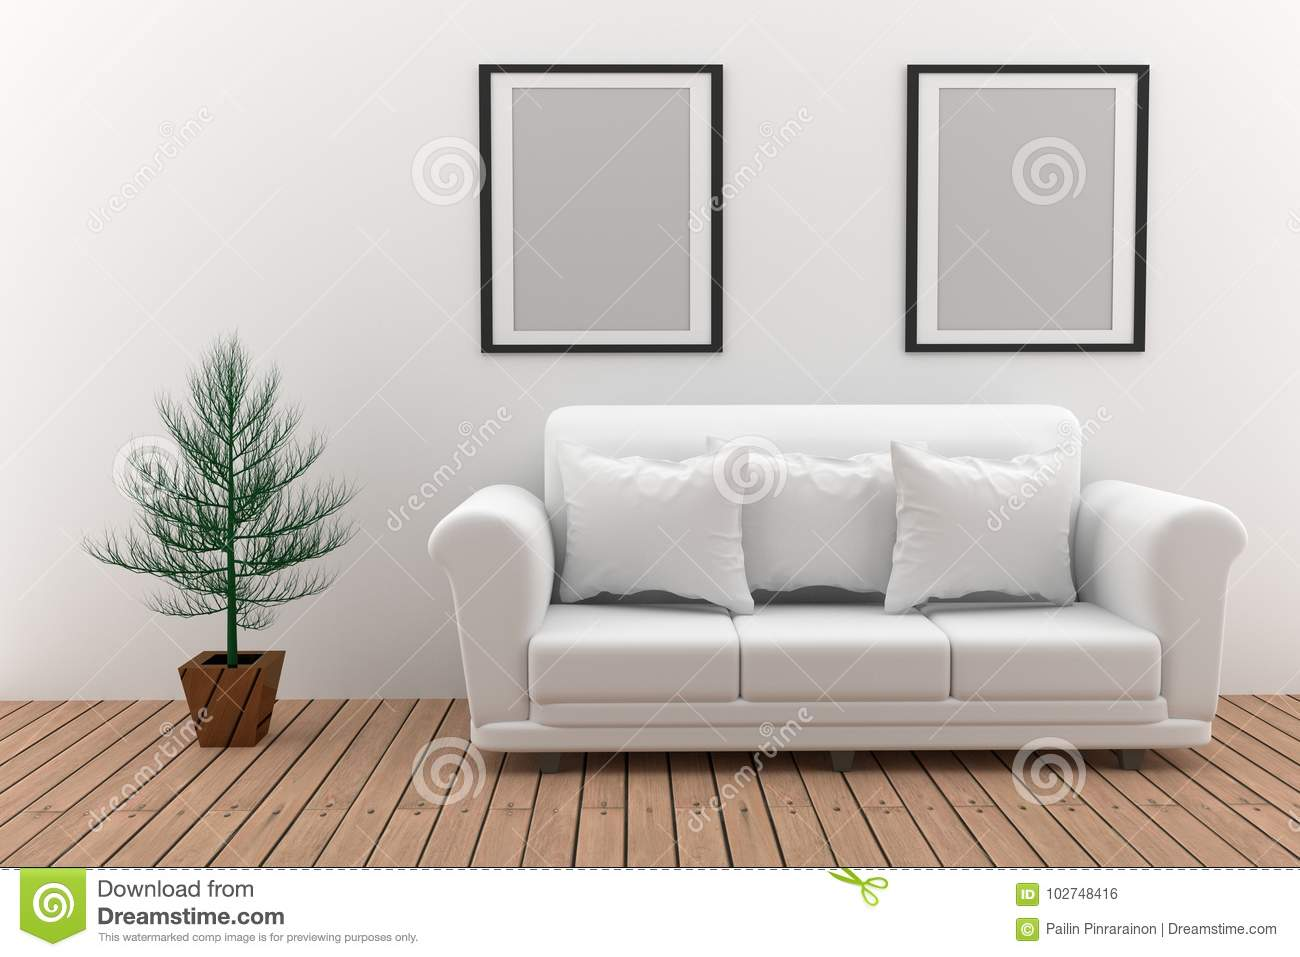 Wondrous Mock Up Minimalist White Sofa With Plant In 3D Rendering Unemploymentrelief Wooden Chair Designs For Living Room Unemploymentrelieforg